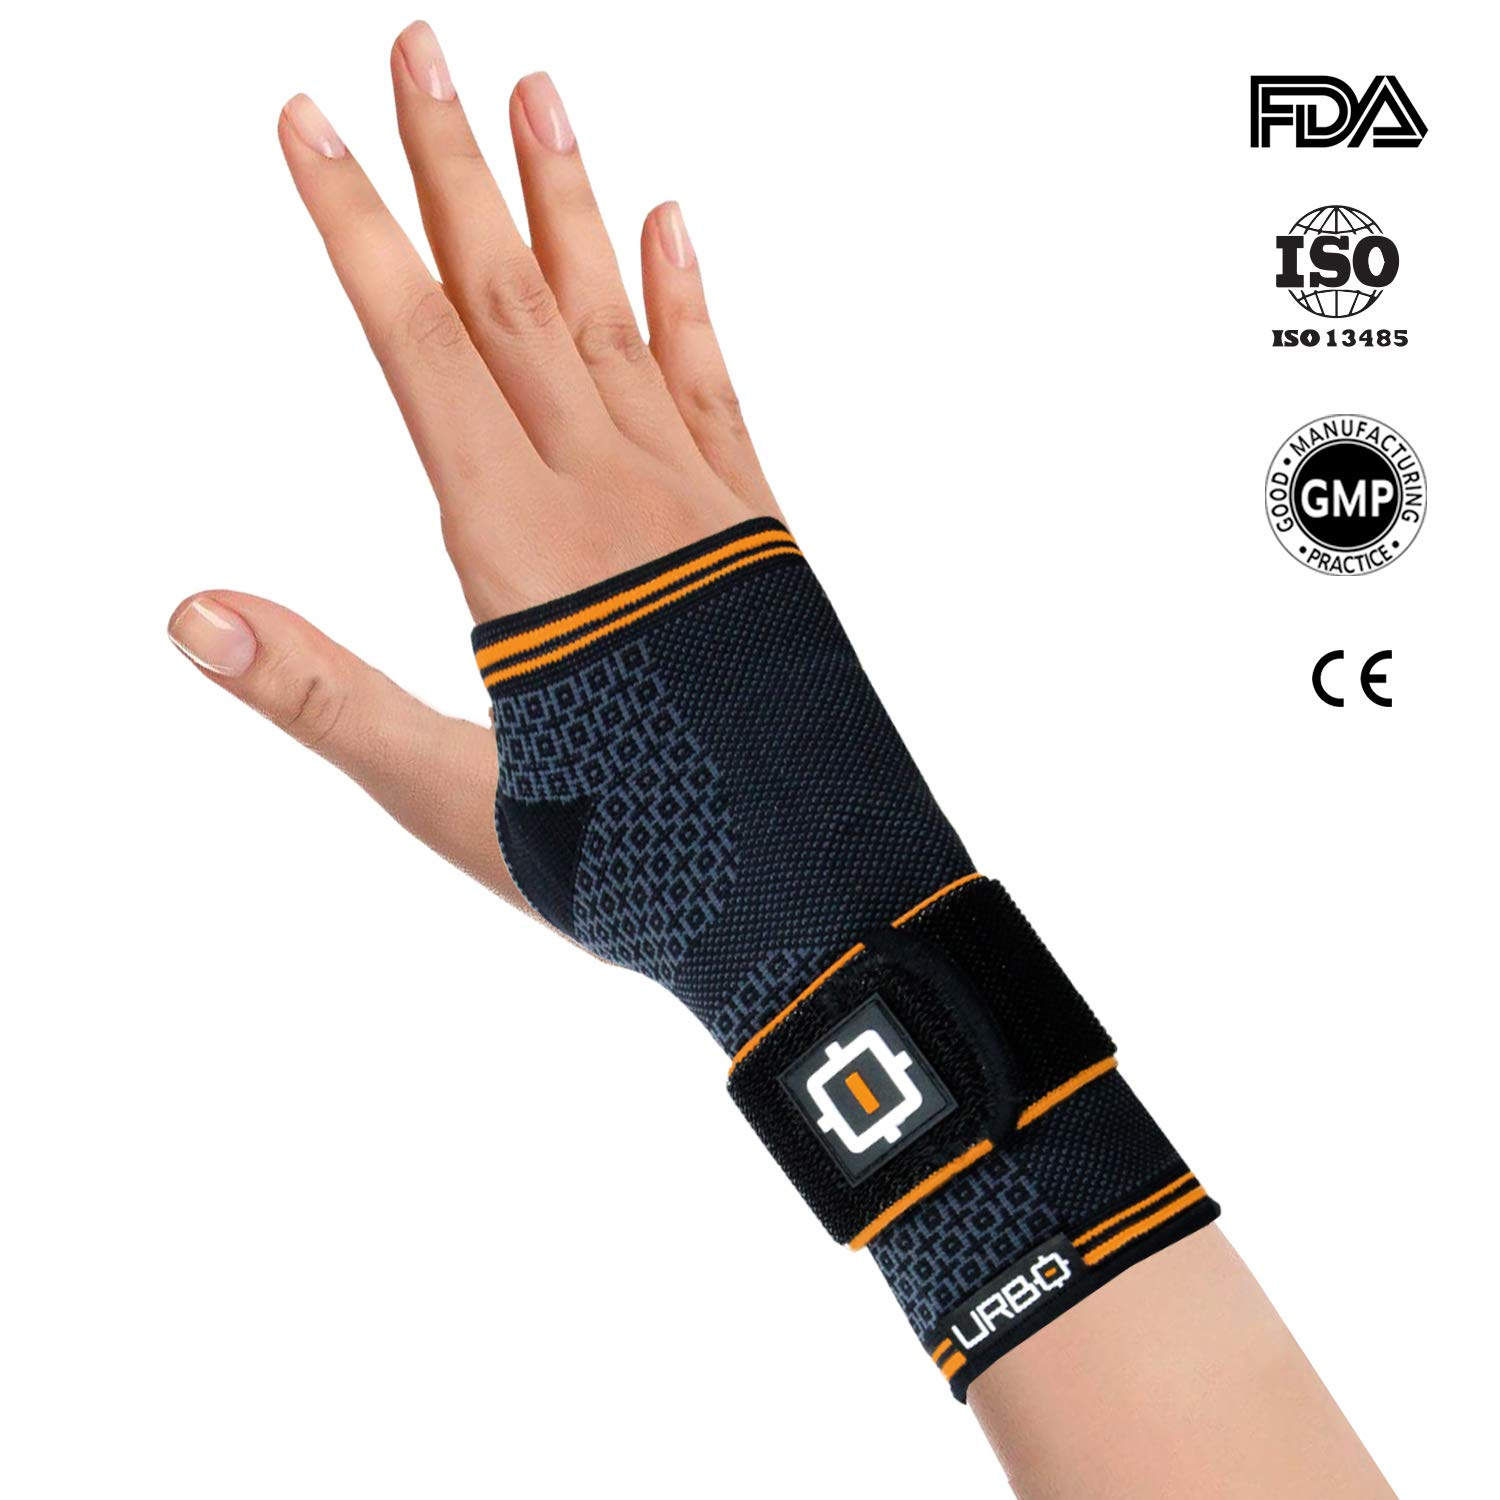 Urbo Wrist Compression Brace FDA & CE Approved with Ergonomic Support for Computer Use Problems Like Carpal Tunnel Syndrome, Mouse Wrist, Tendinosis & Other Repetitive Strain Injuries (Large, Right)